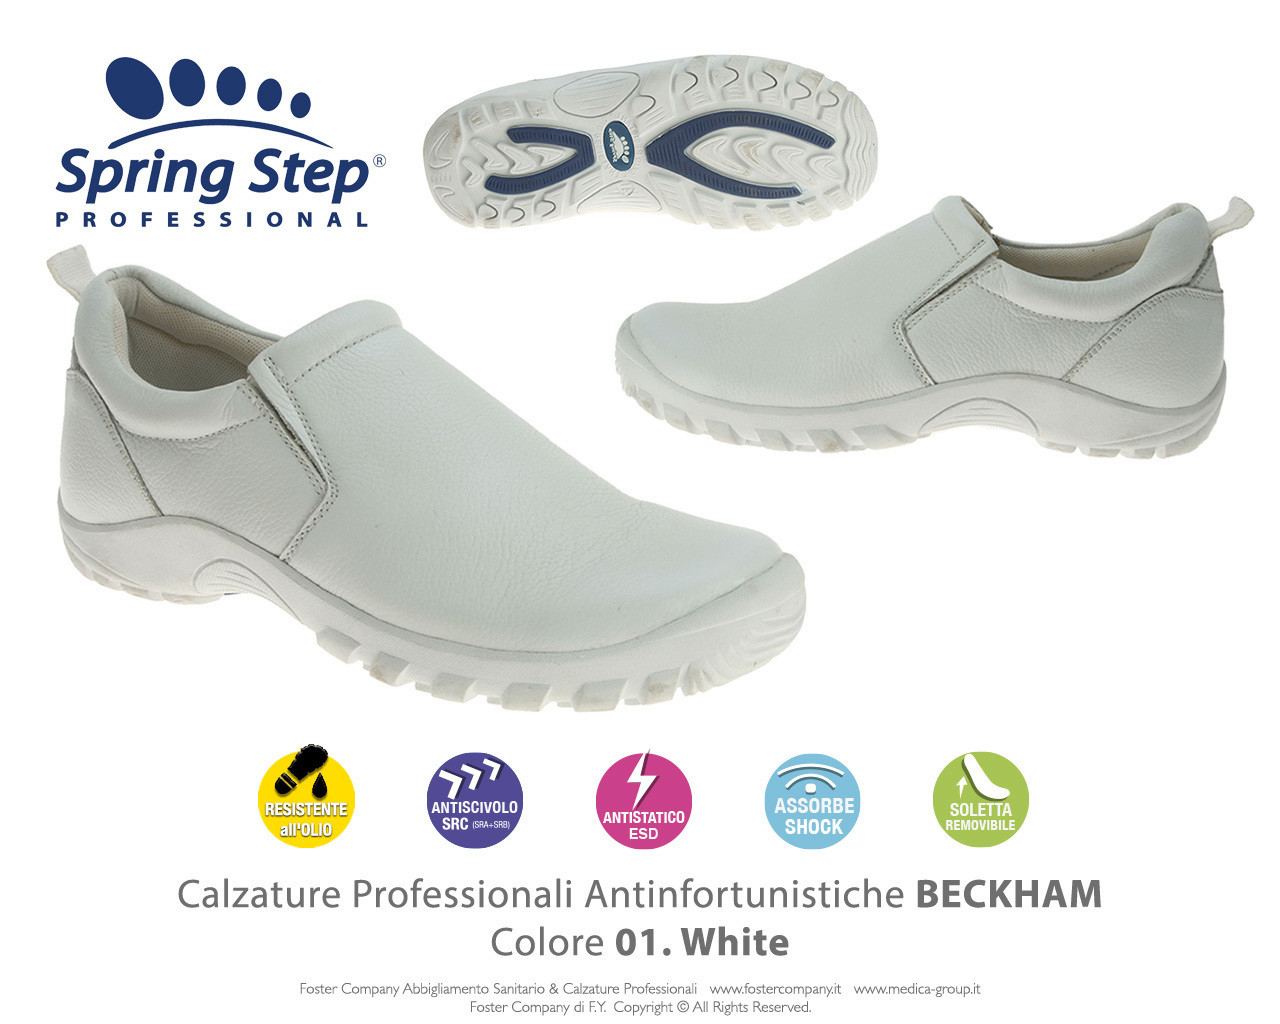 Calzature Professionali Spring Step BECKHAM Colore 01. White